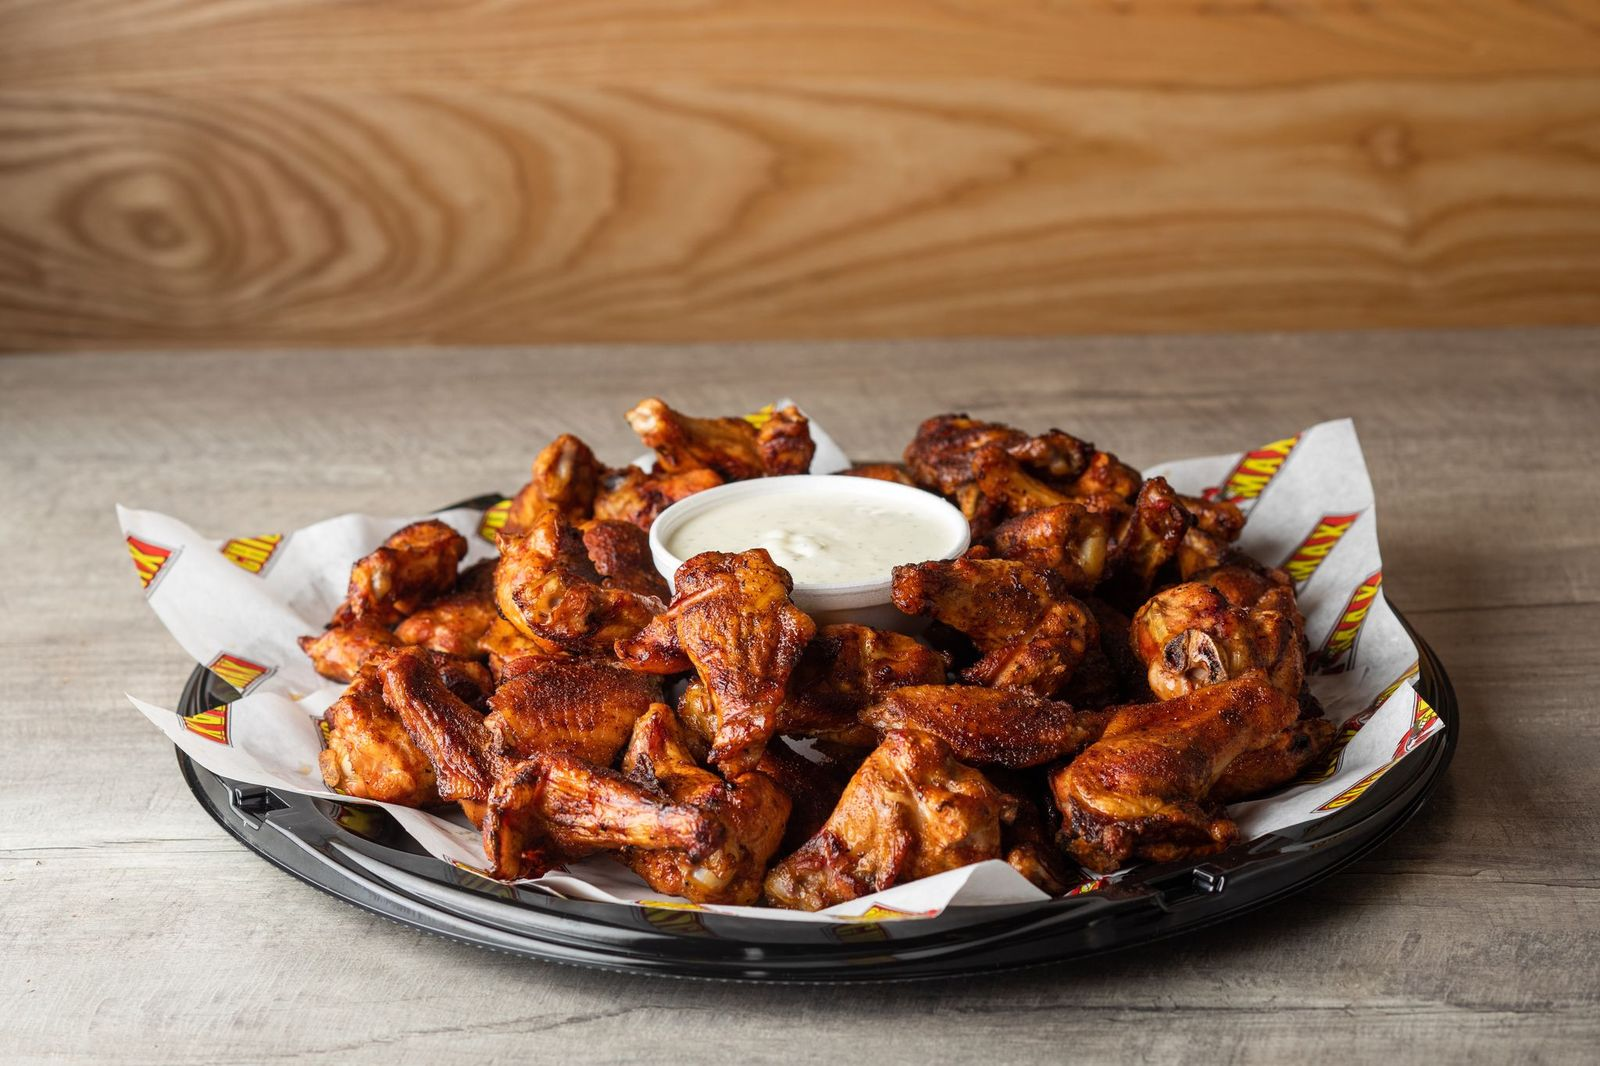 Chicken wings - 50 for $30 from Chicken Max Wichita for 4th of July